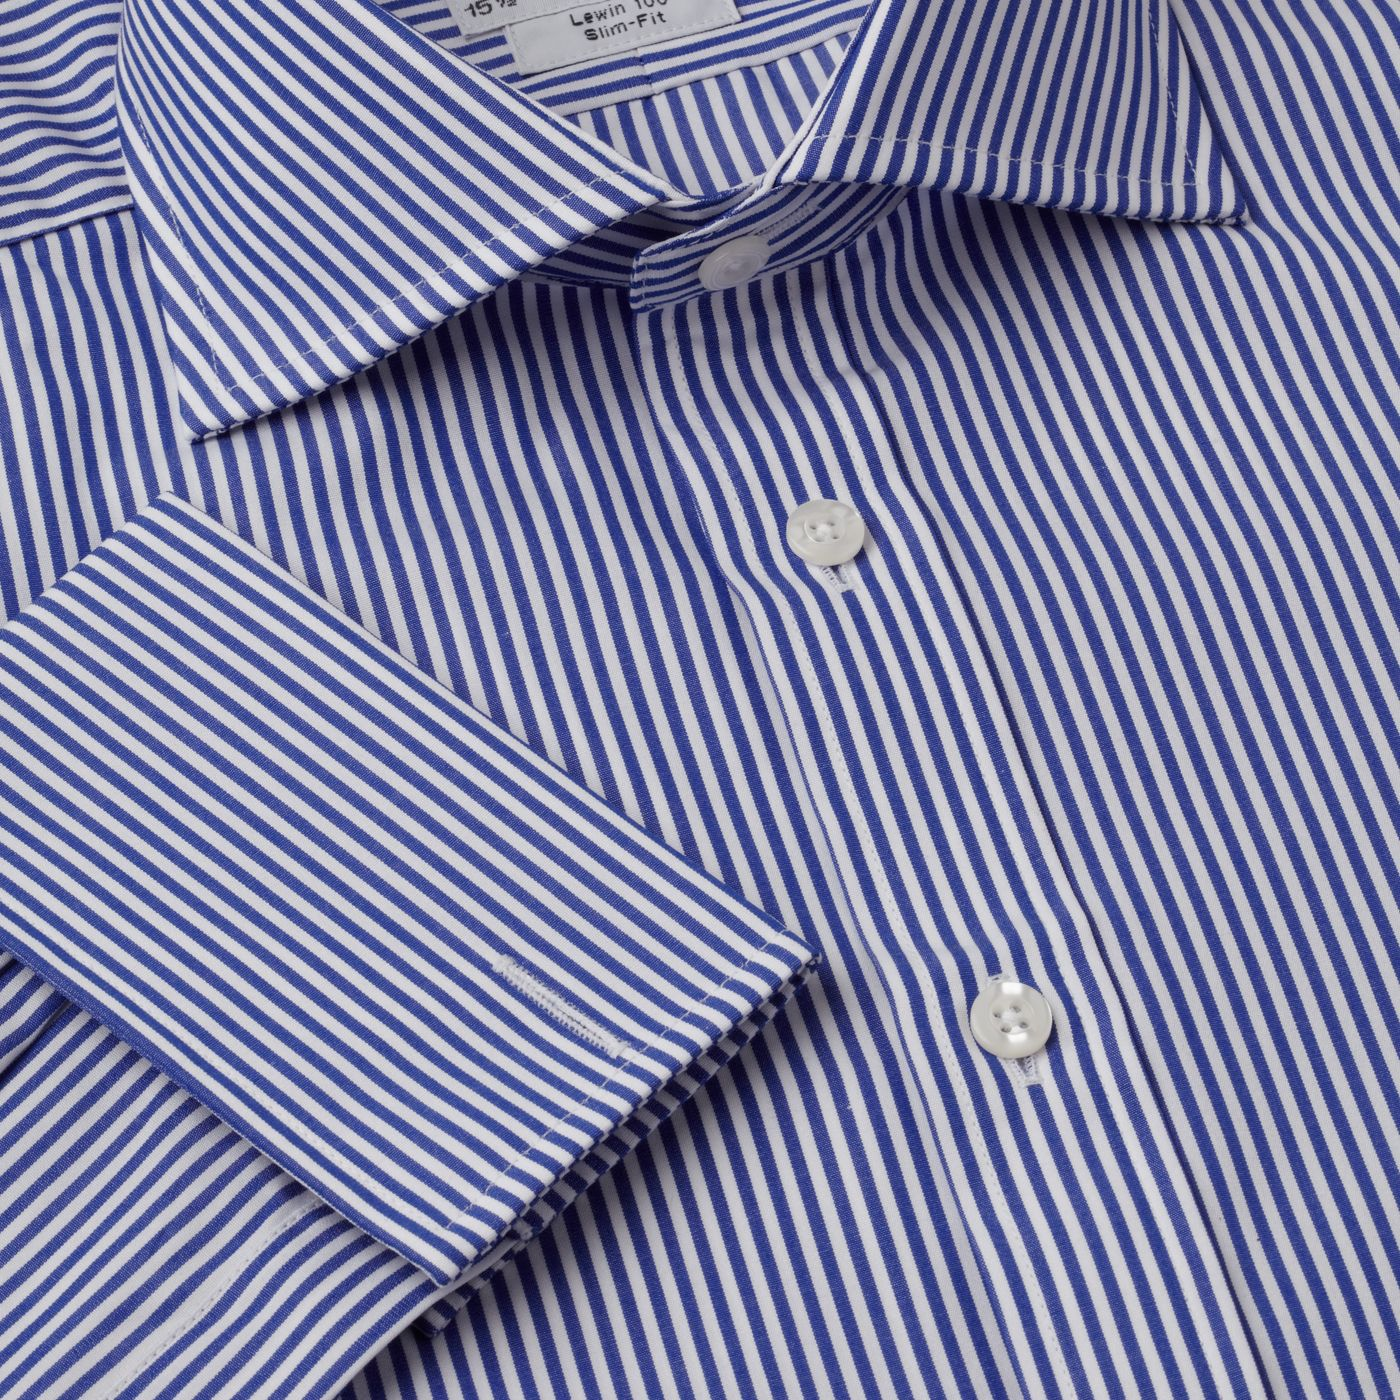 Bengal stripe Windsor shirt